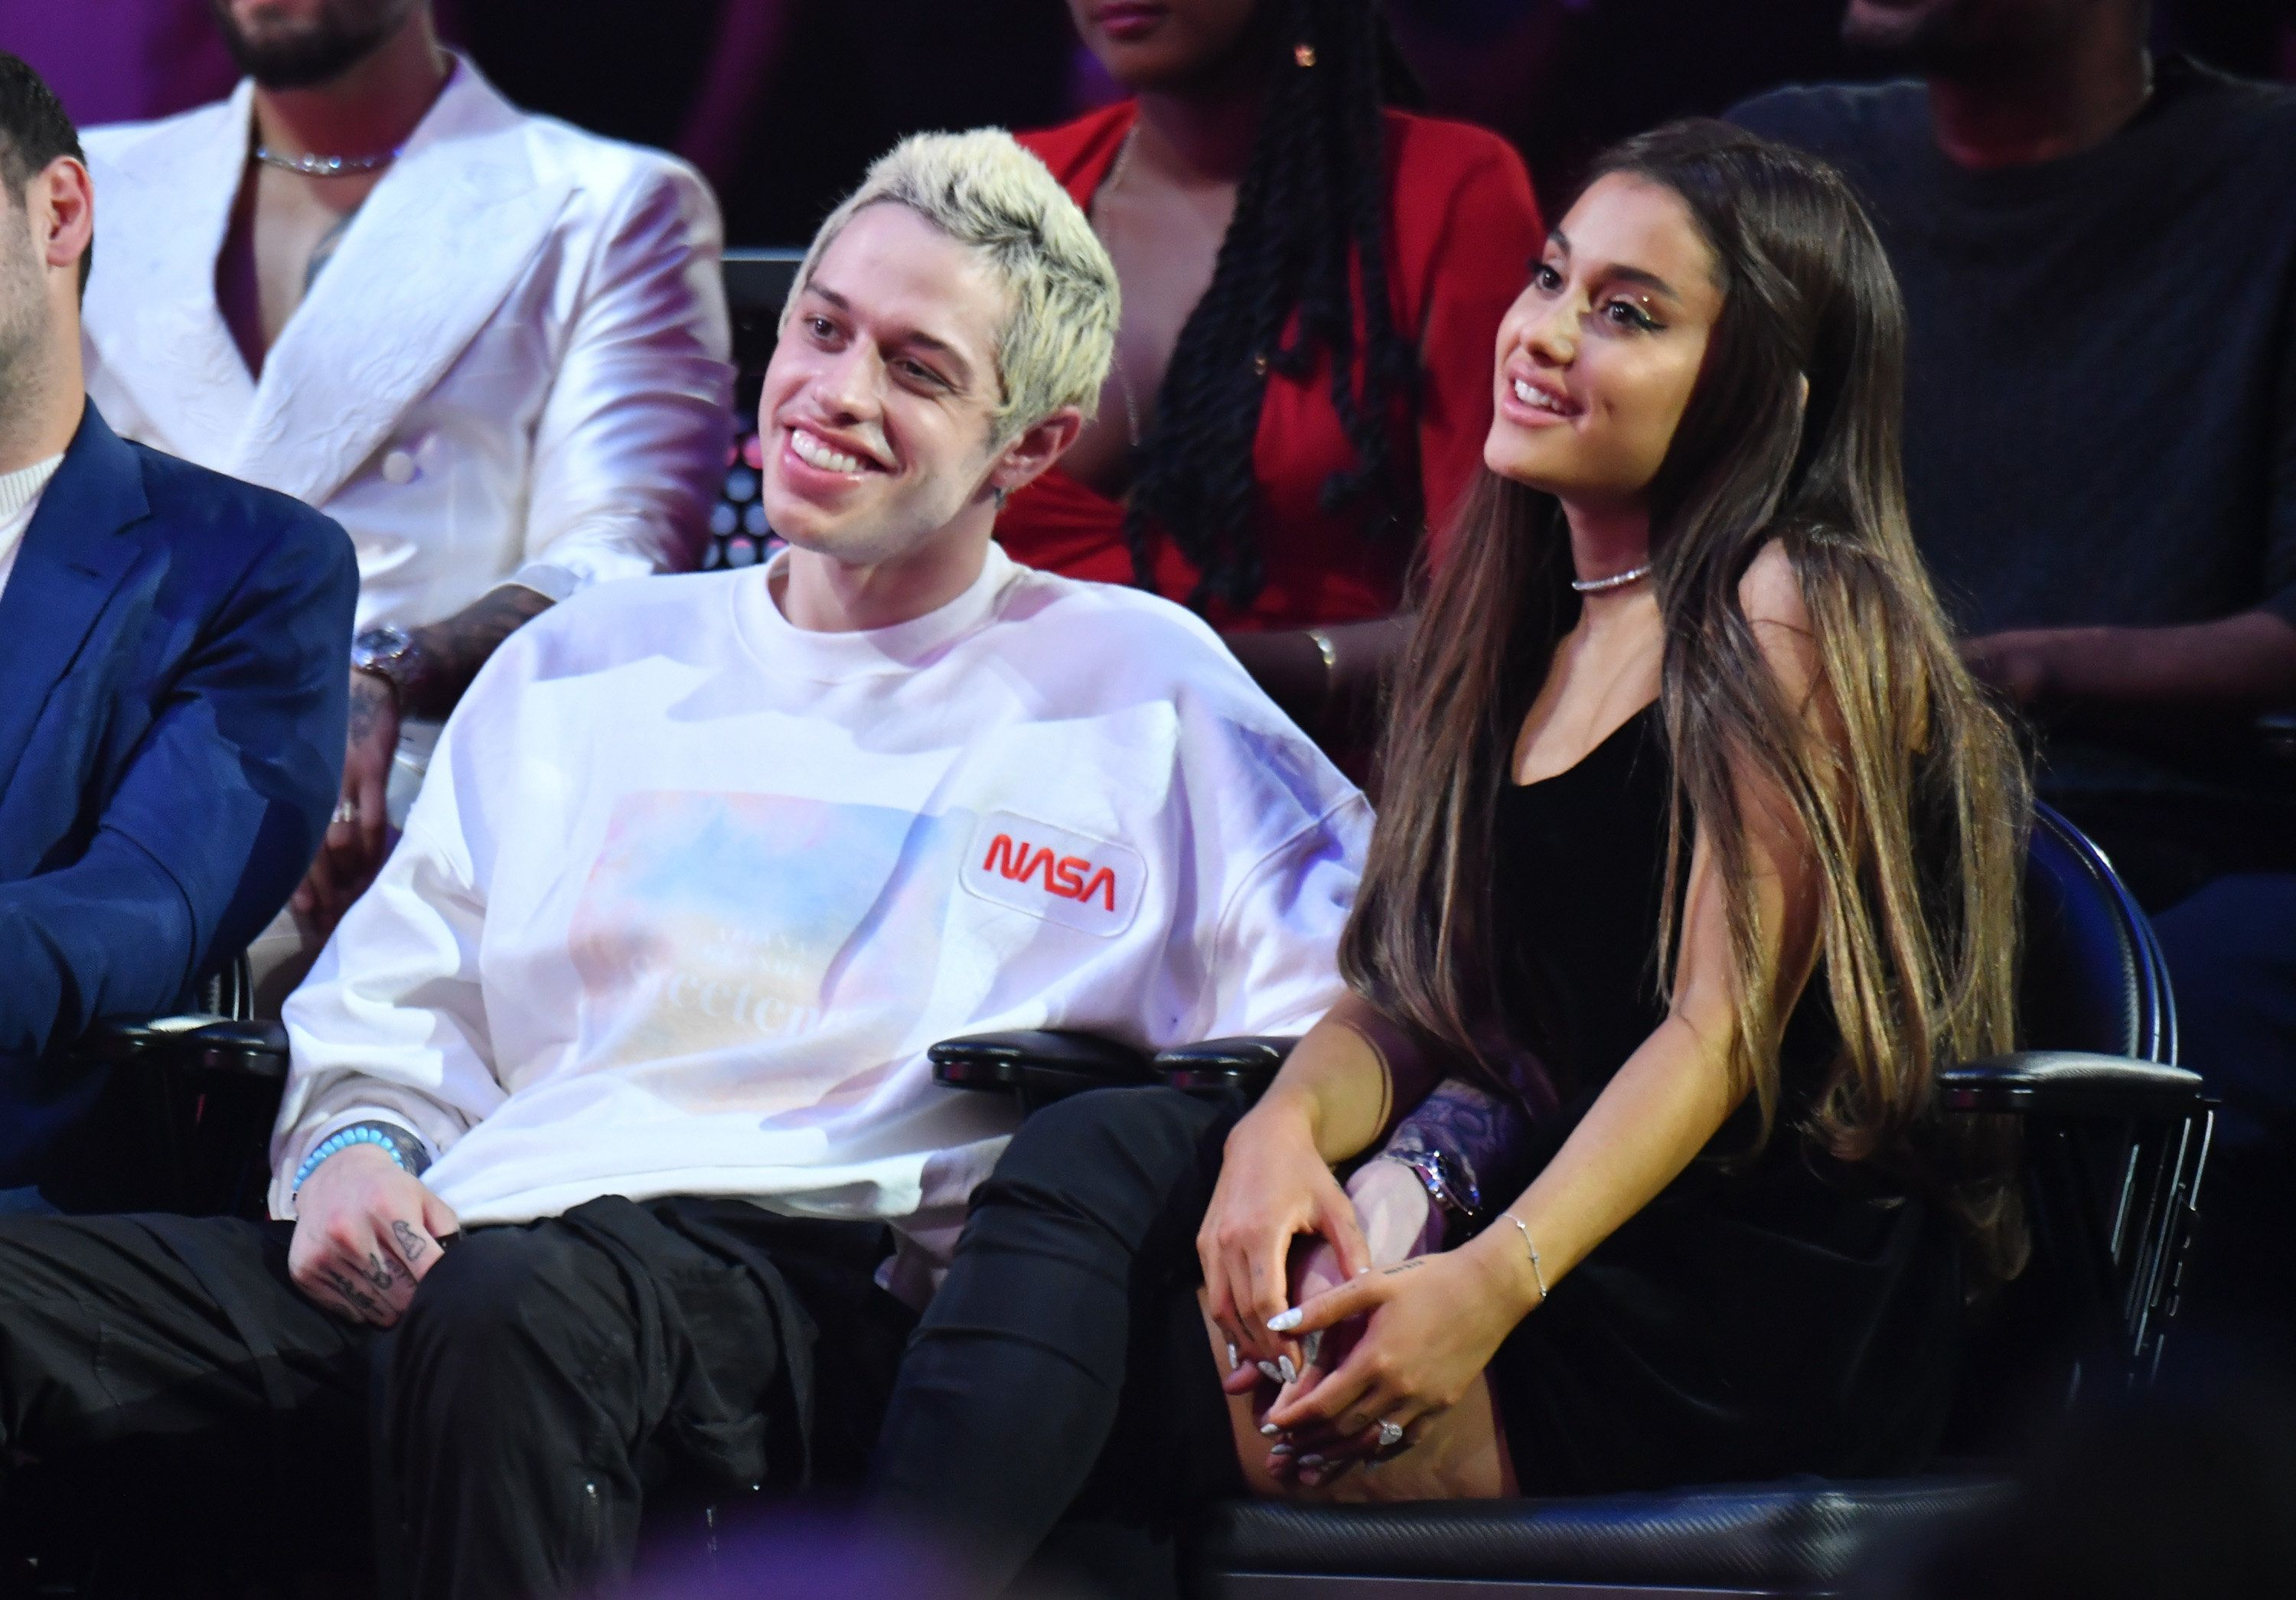 NEW YORK, NY - AUGUST 20:  Pete Davidson (C) and Ariana Grande (R) attend the 2018 MTV Video Music Awards at Radio City Music Hall on August 20, 2018 in New York City.  (Photo by Jeff Kravitz/FilmMagic)